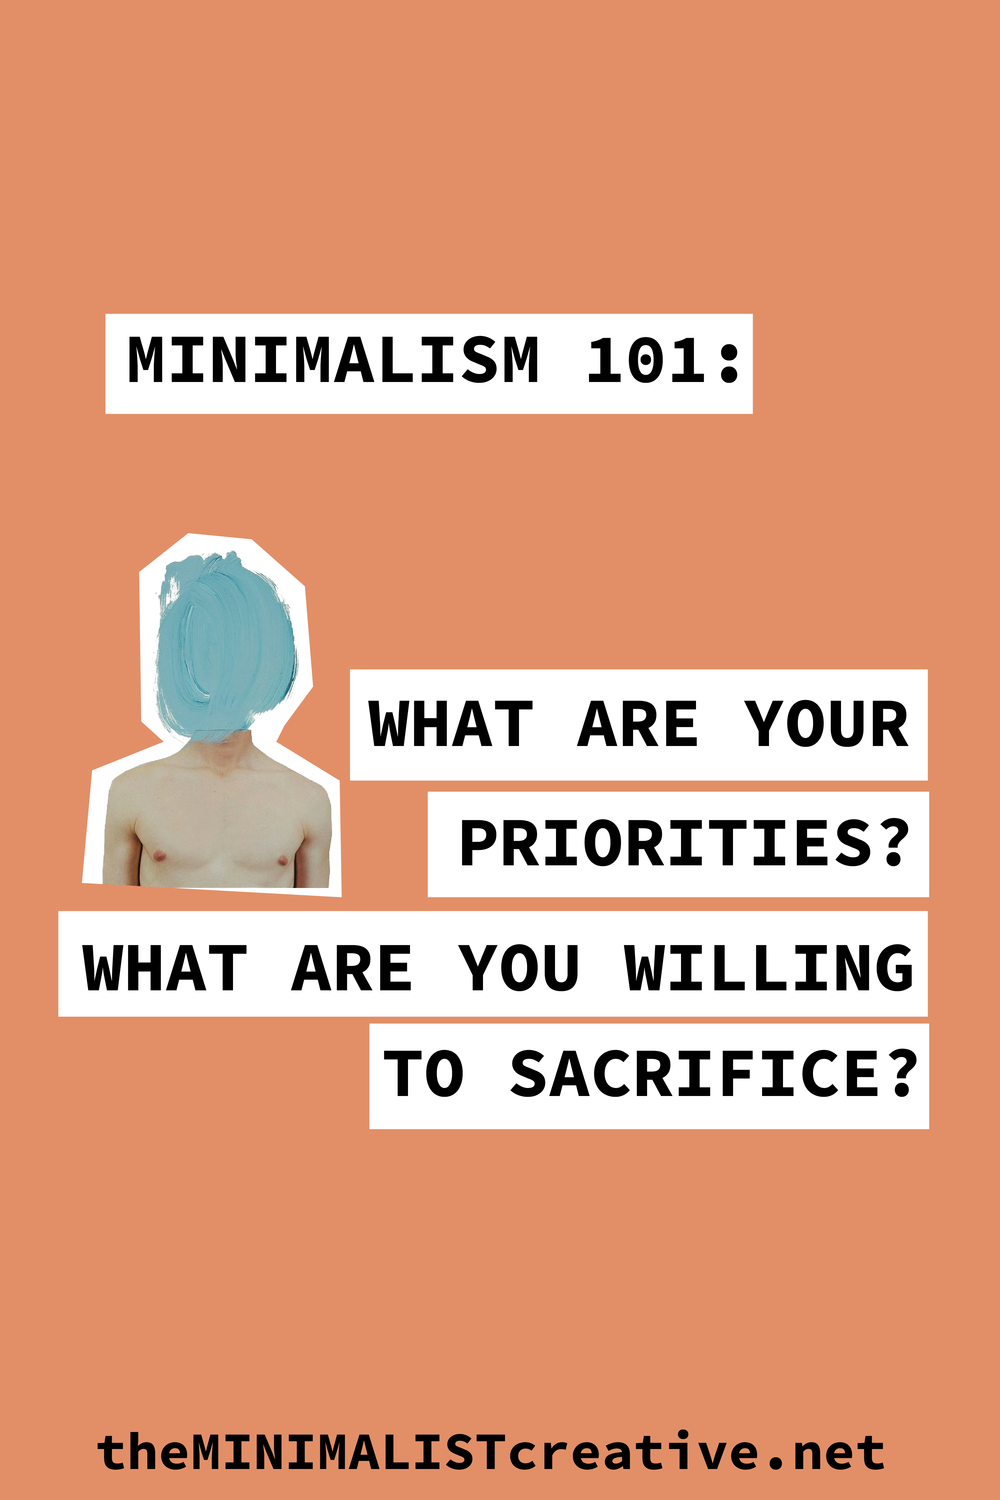 Minimalism 101: What Are Your Priorities? What Are You Willing To Sacrifice?